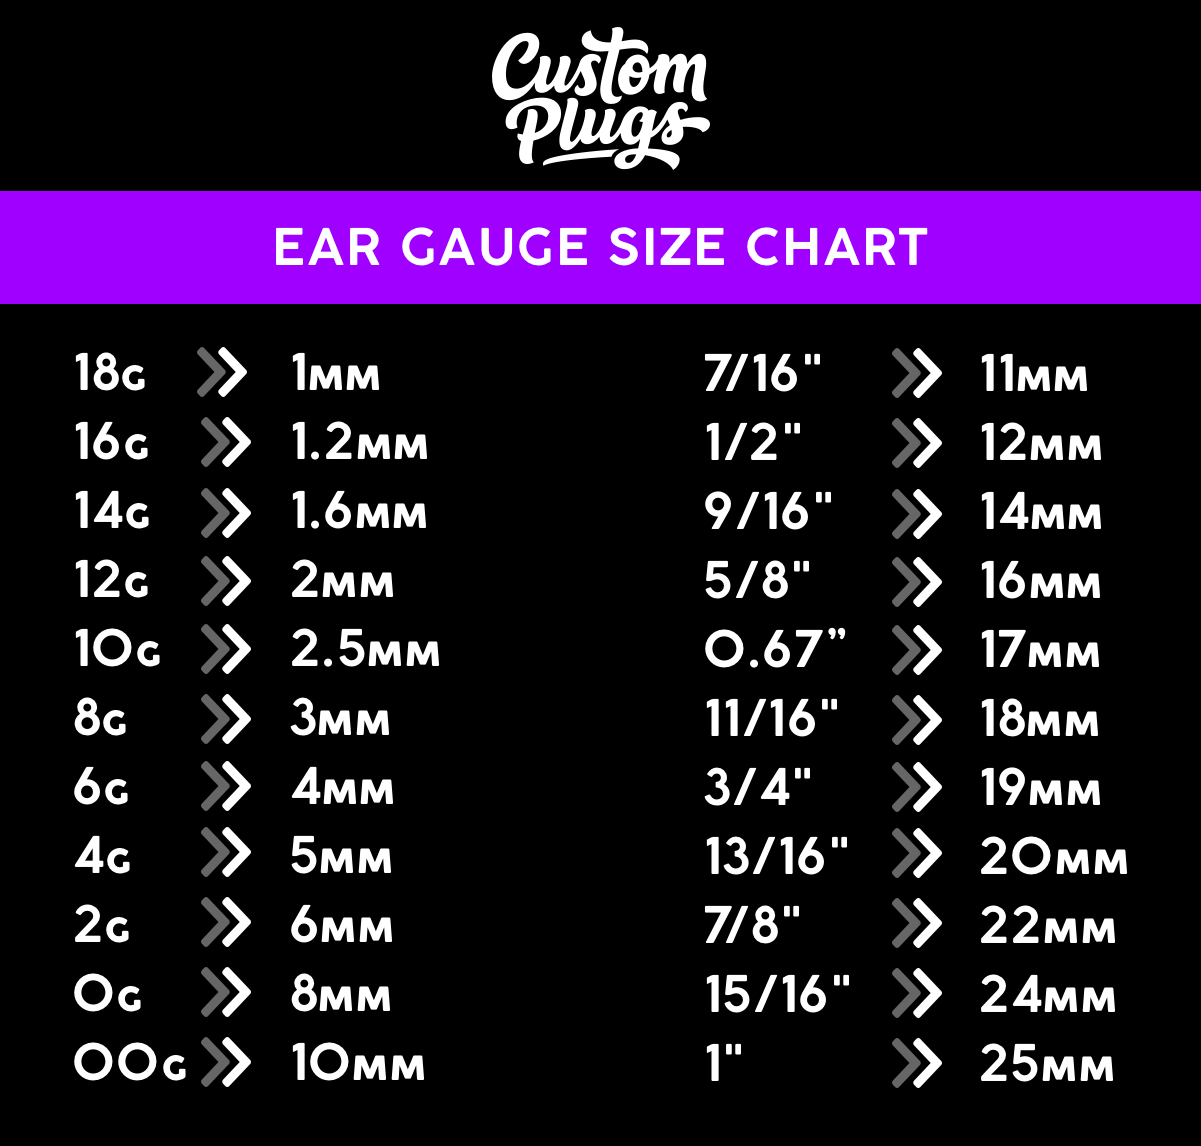 Ear Gauge Sizes Explained In Full Customplugs Com Uk Custom Plugs